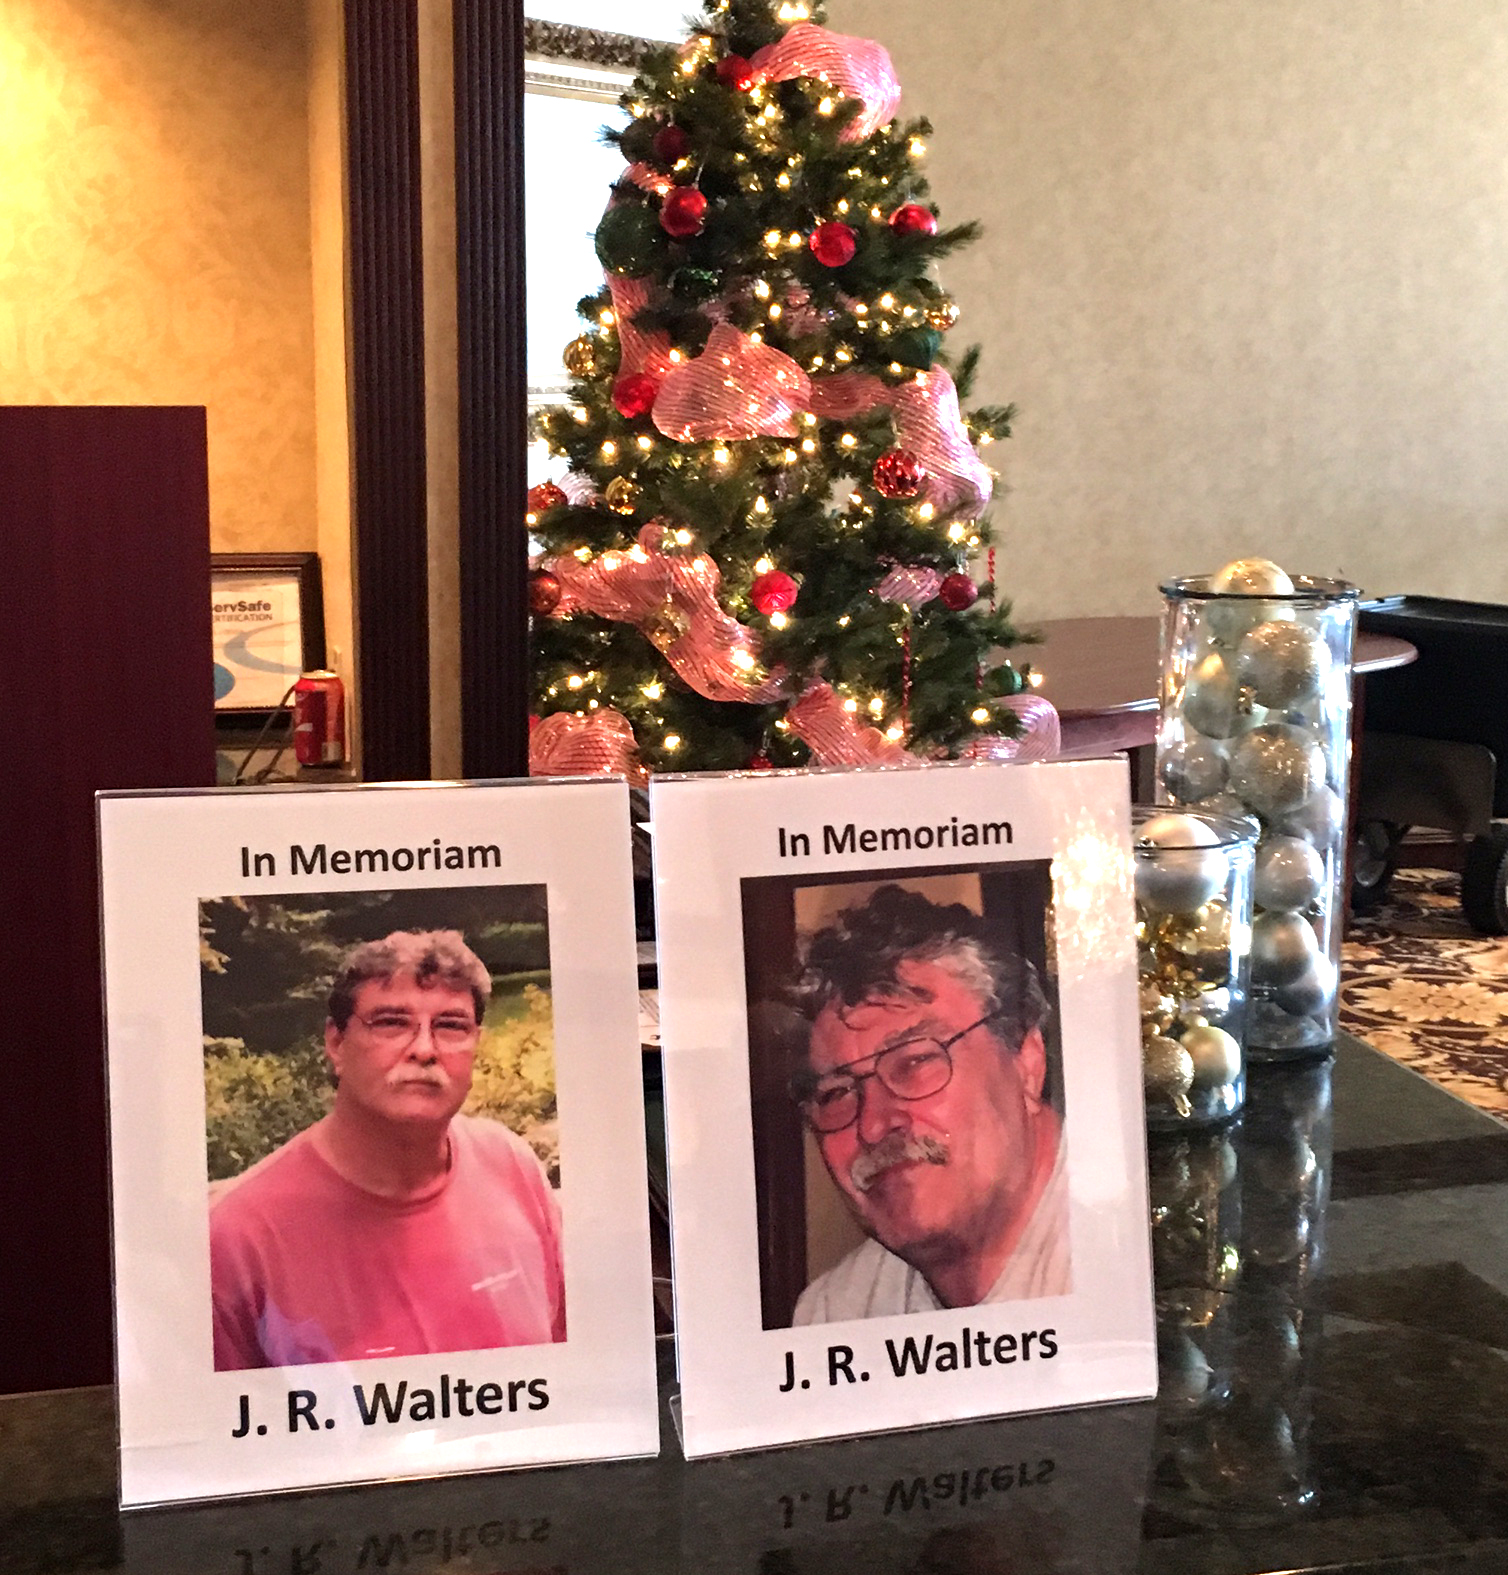 At December coin show In Memoriam honoring J. R. Walters